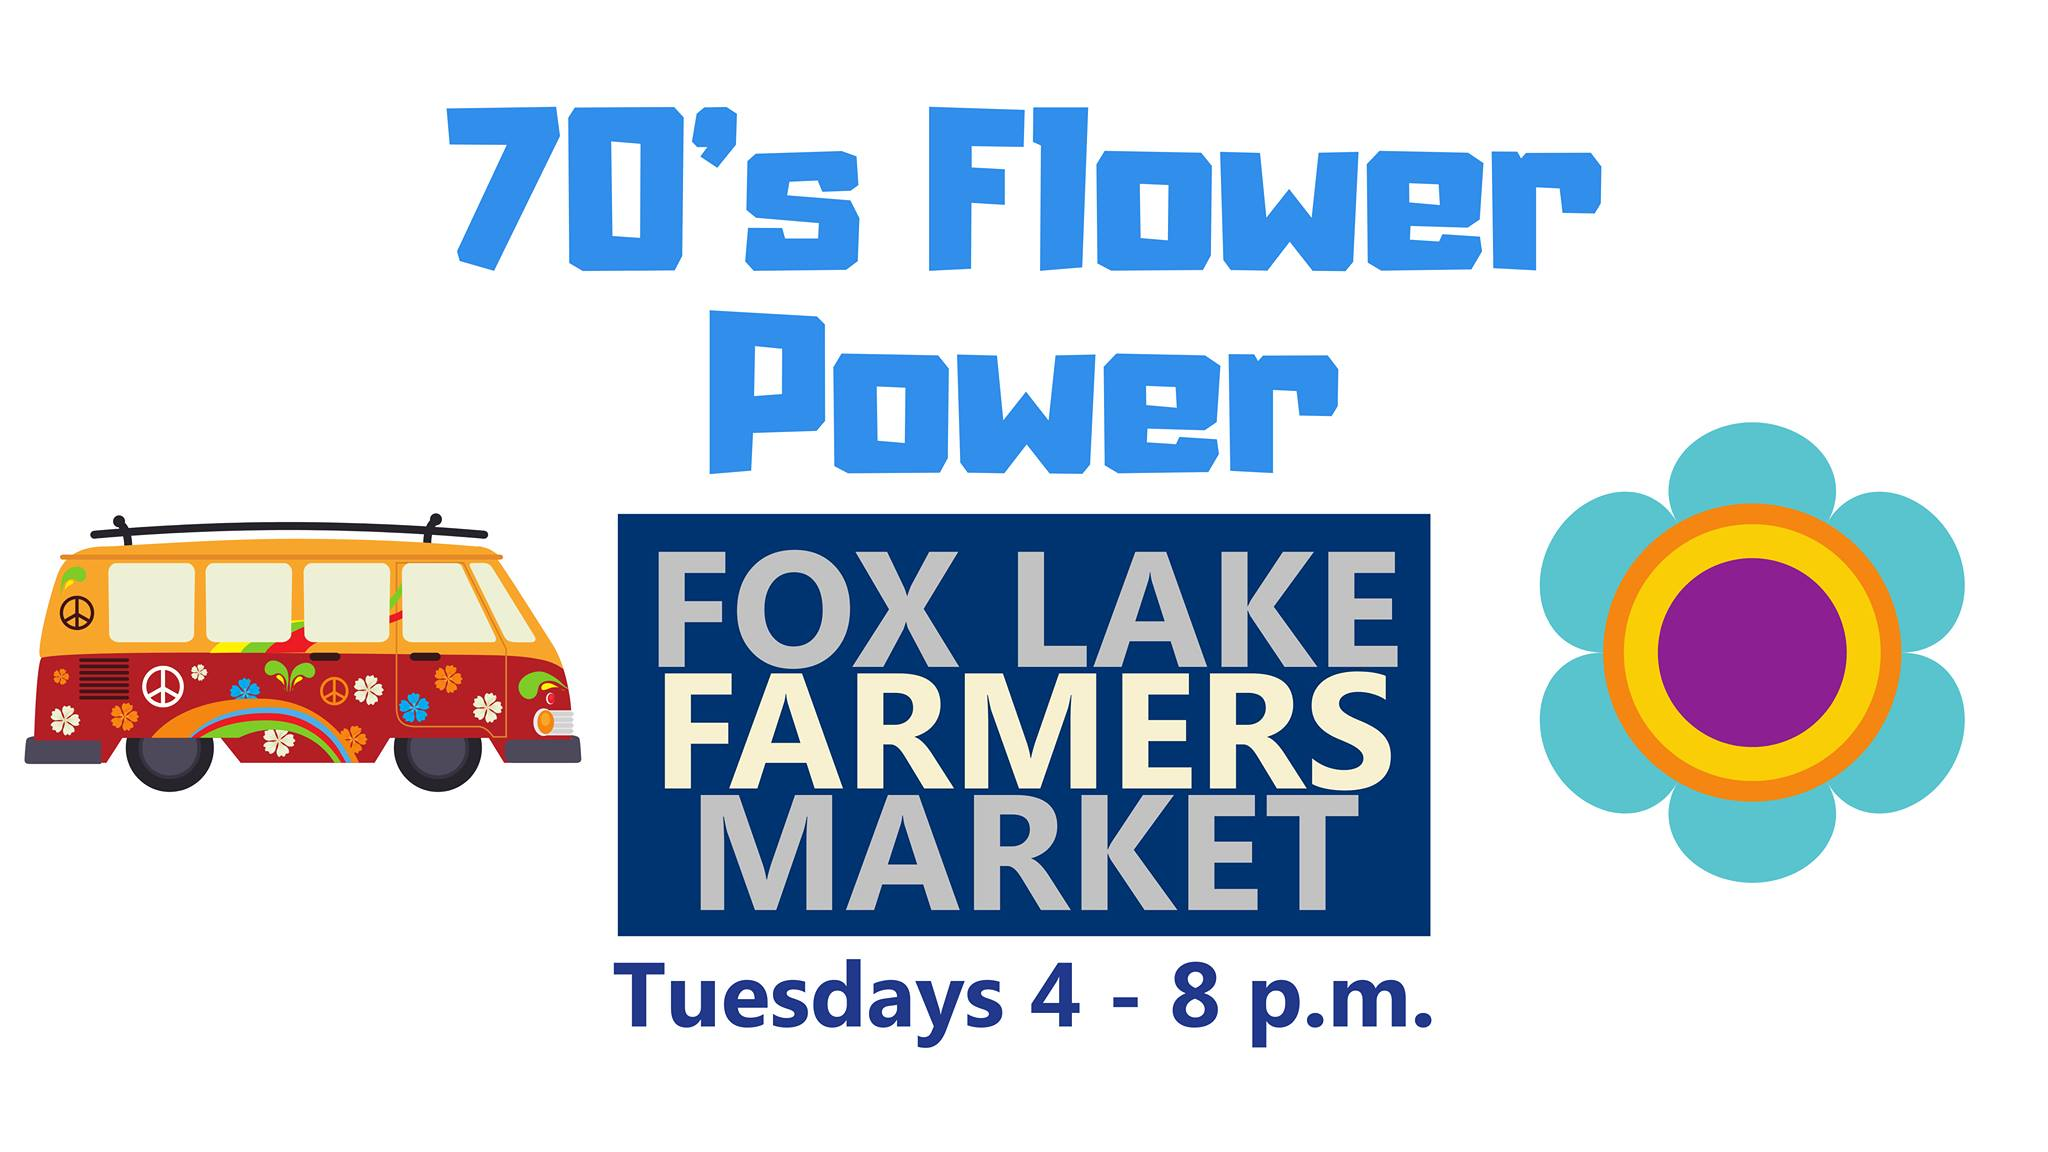 70's Flower Power at the Fox Lake Farmers Market